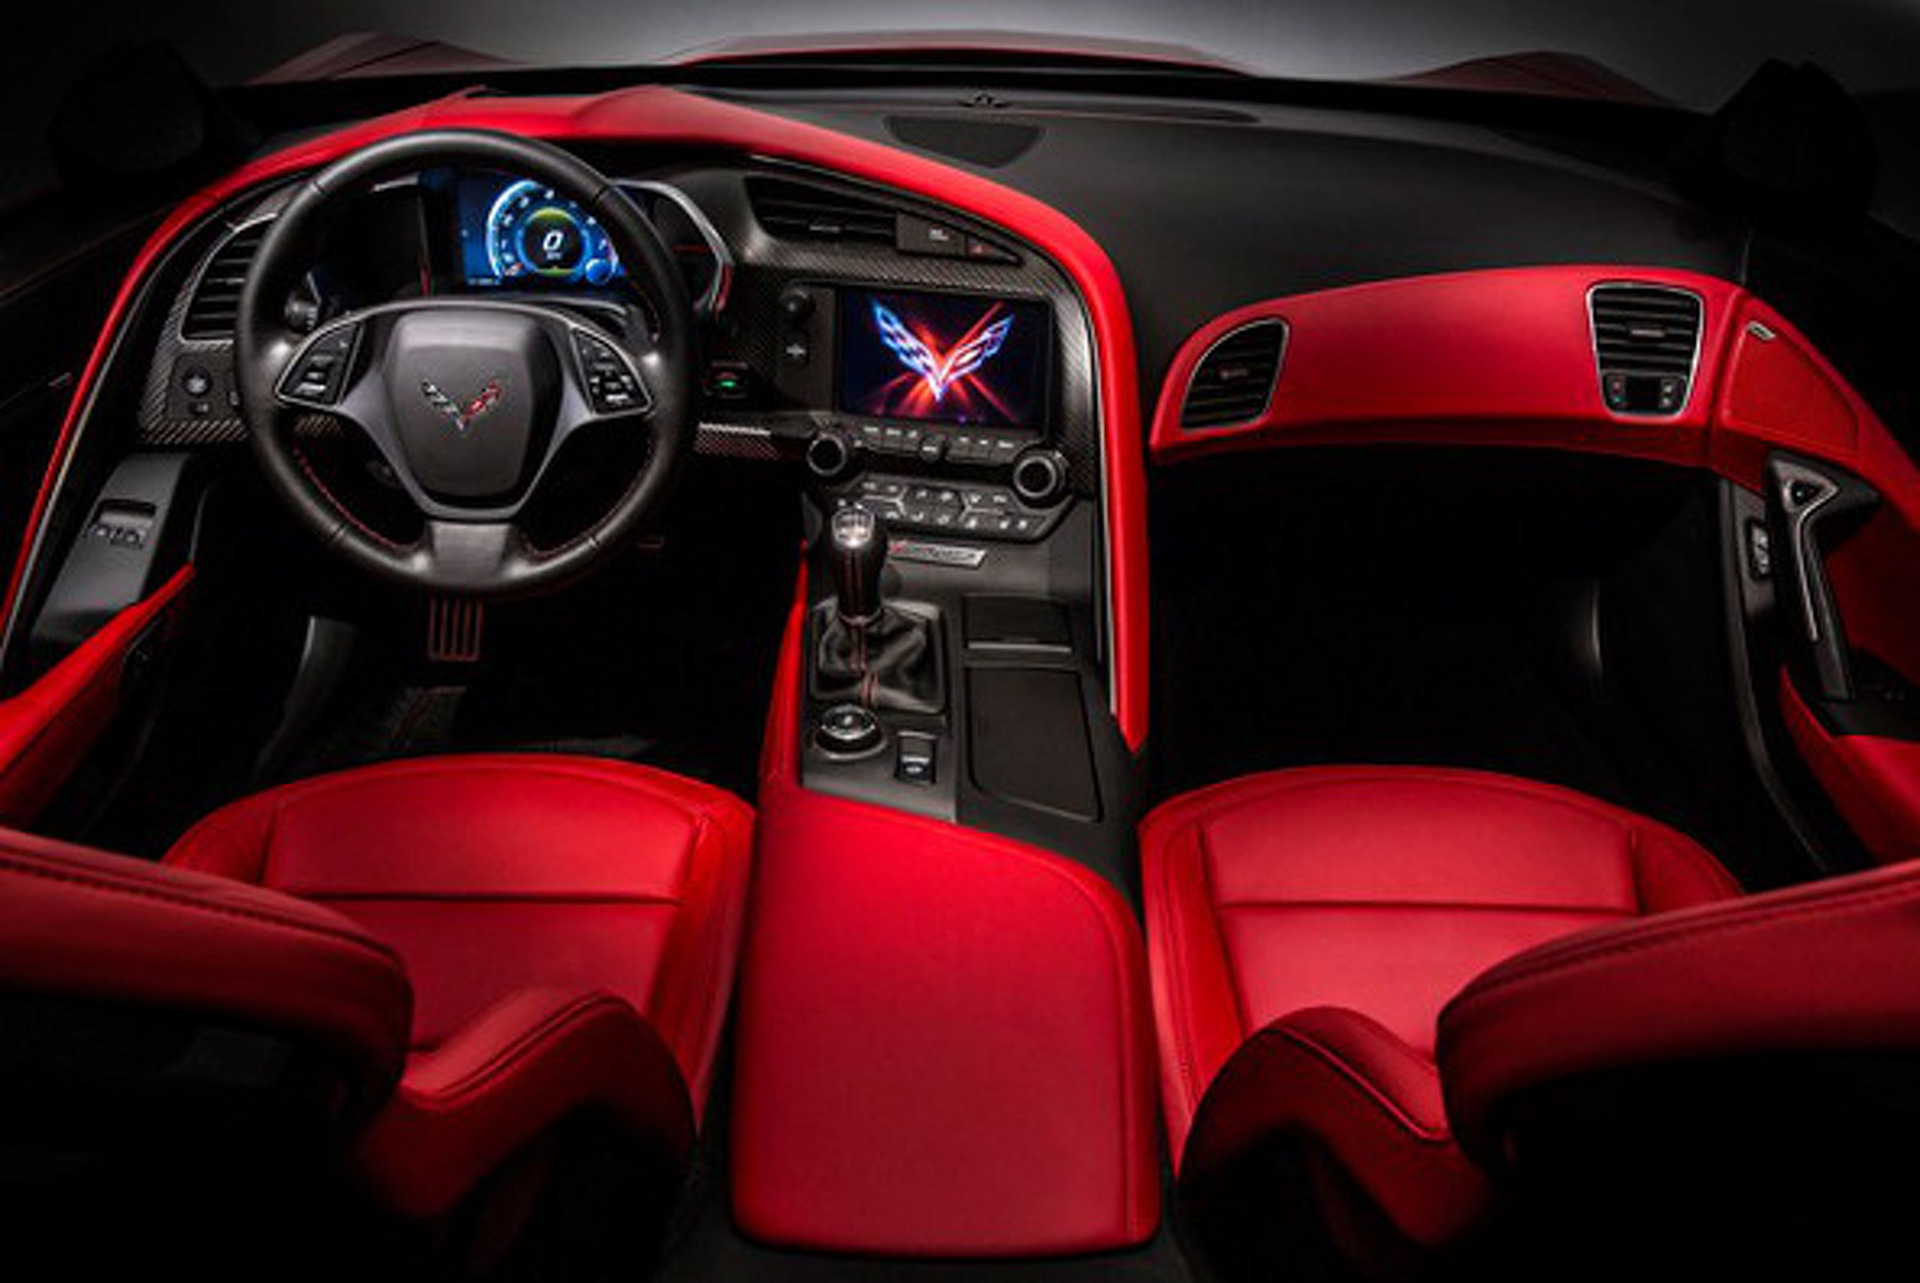 2014 Chevrolet Corvette Stingray: BoldRide Breakdown